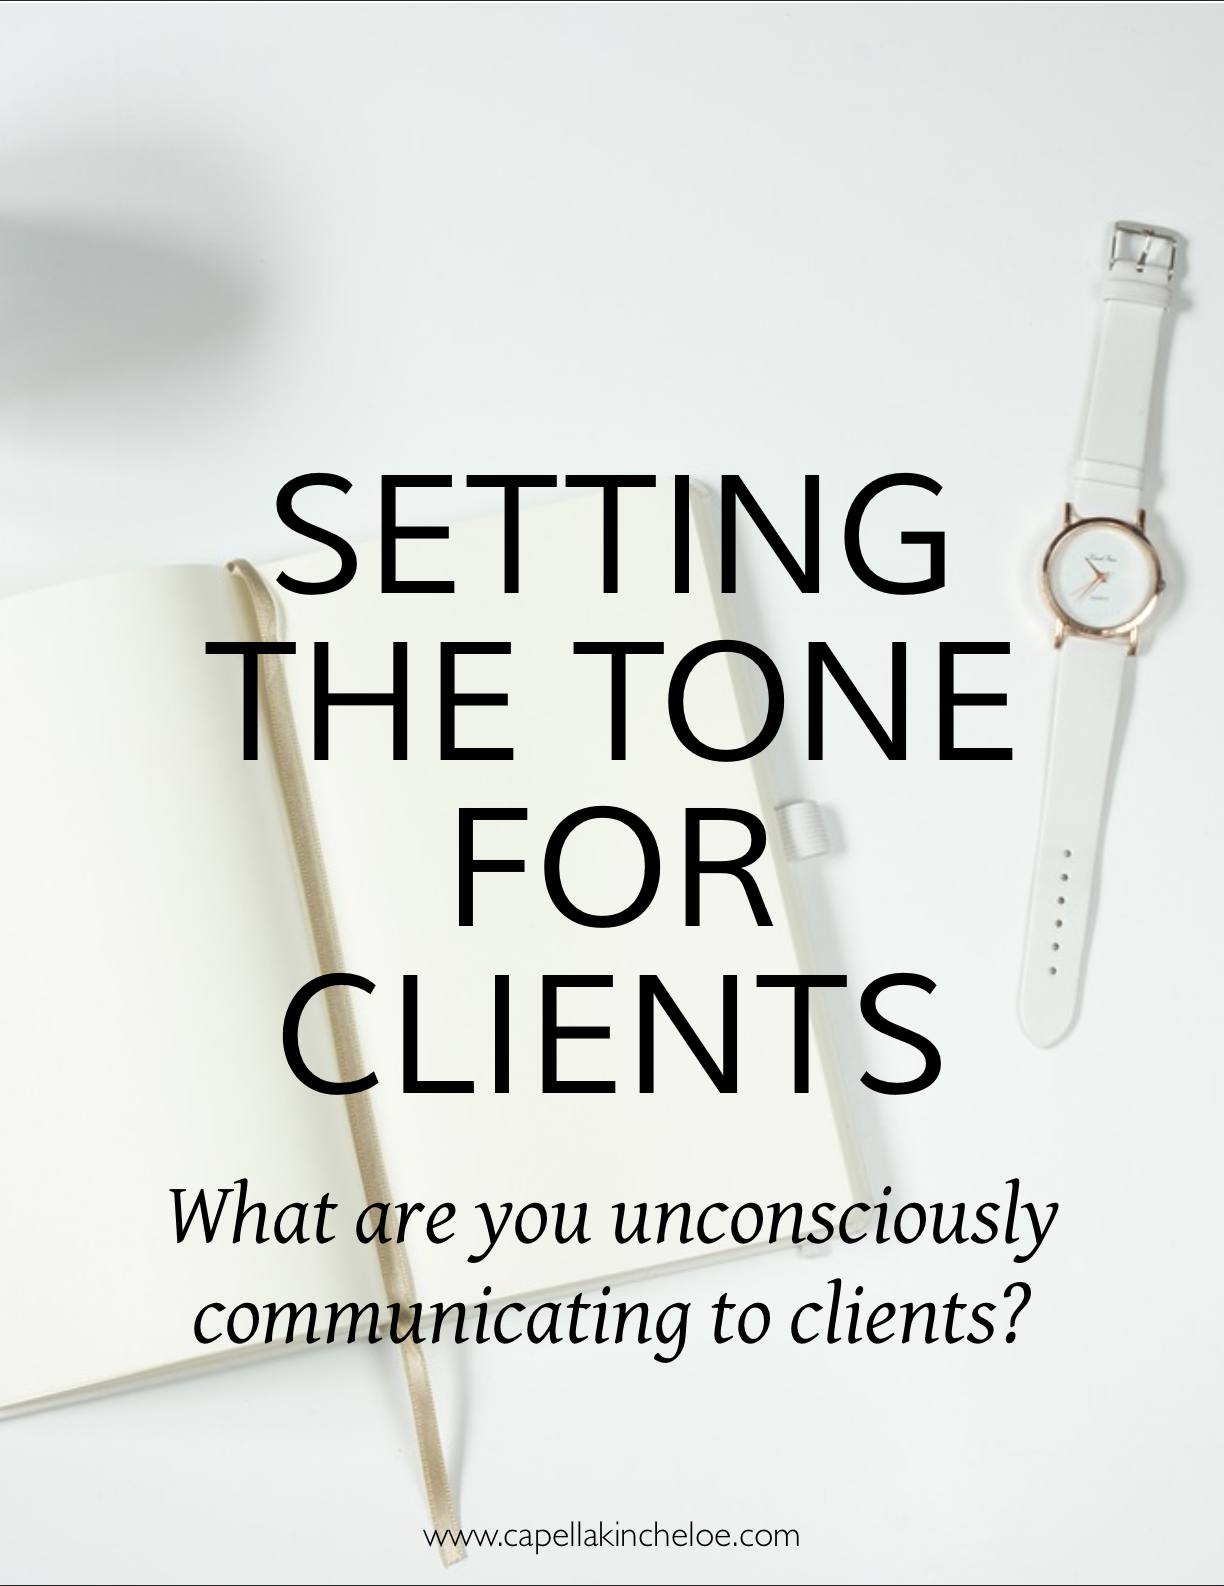 Are you unconciously communicating what you want to clients?  Could you do better?  #interiordesignbusiness #Interiordesignclients #capellakincheloe